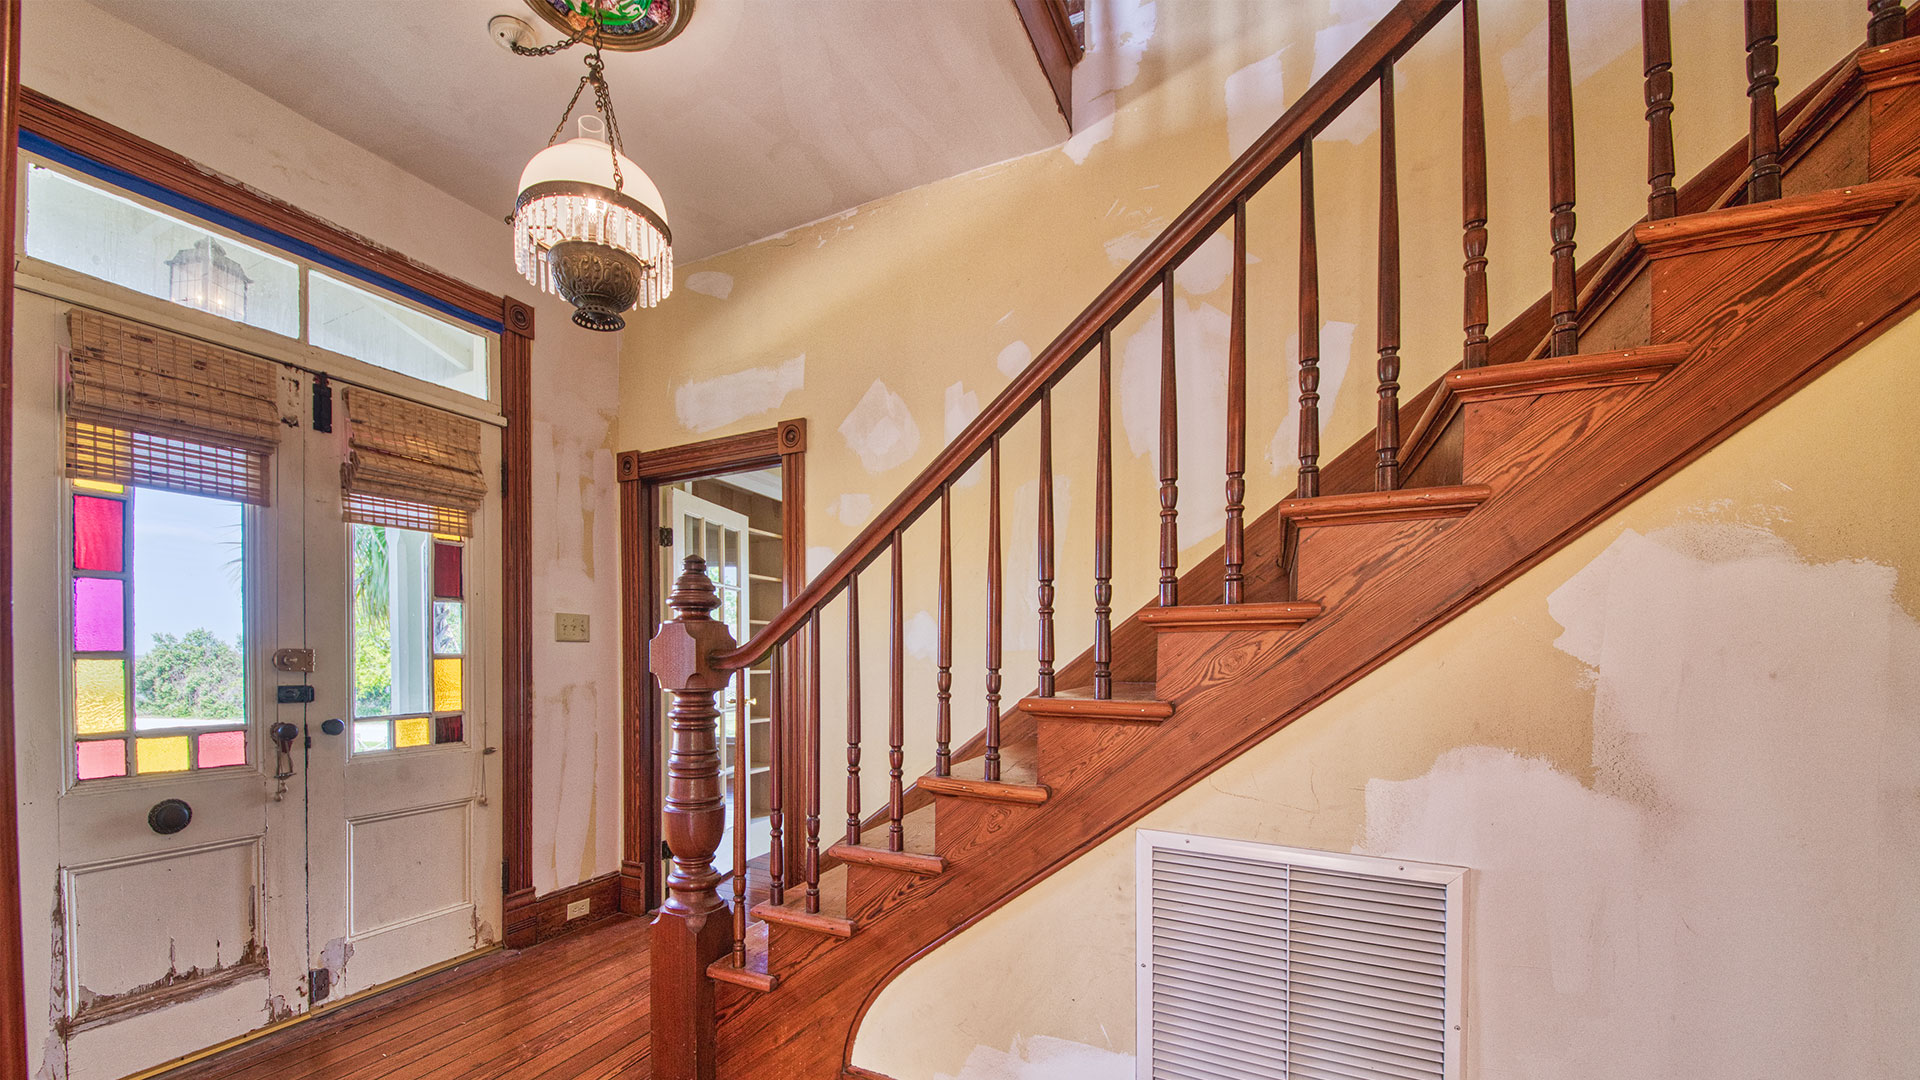 Pippi Longstocking House Fernandina Beach Staircase